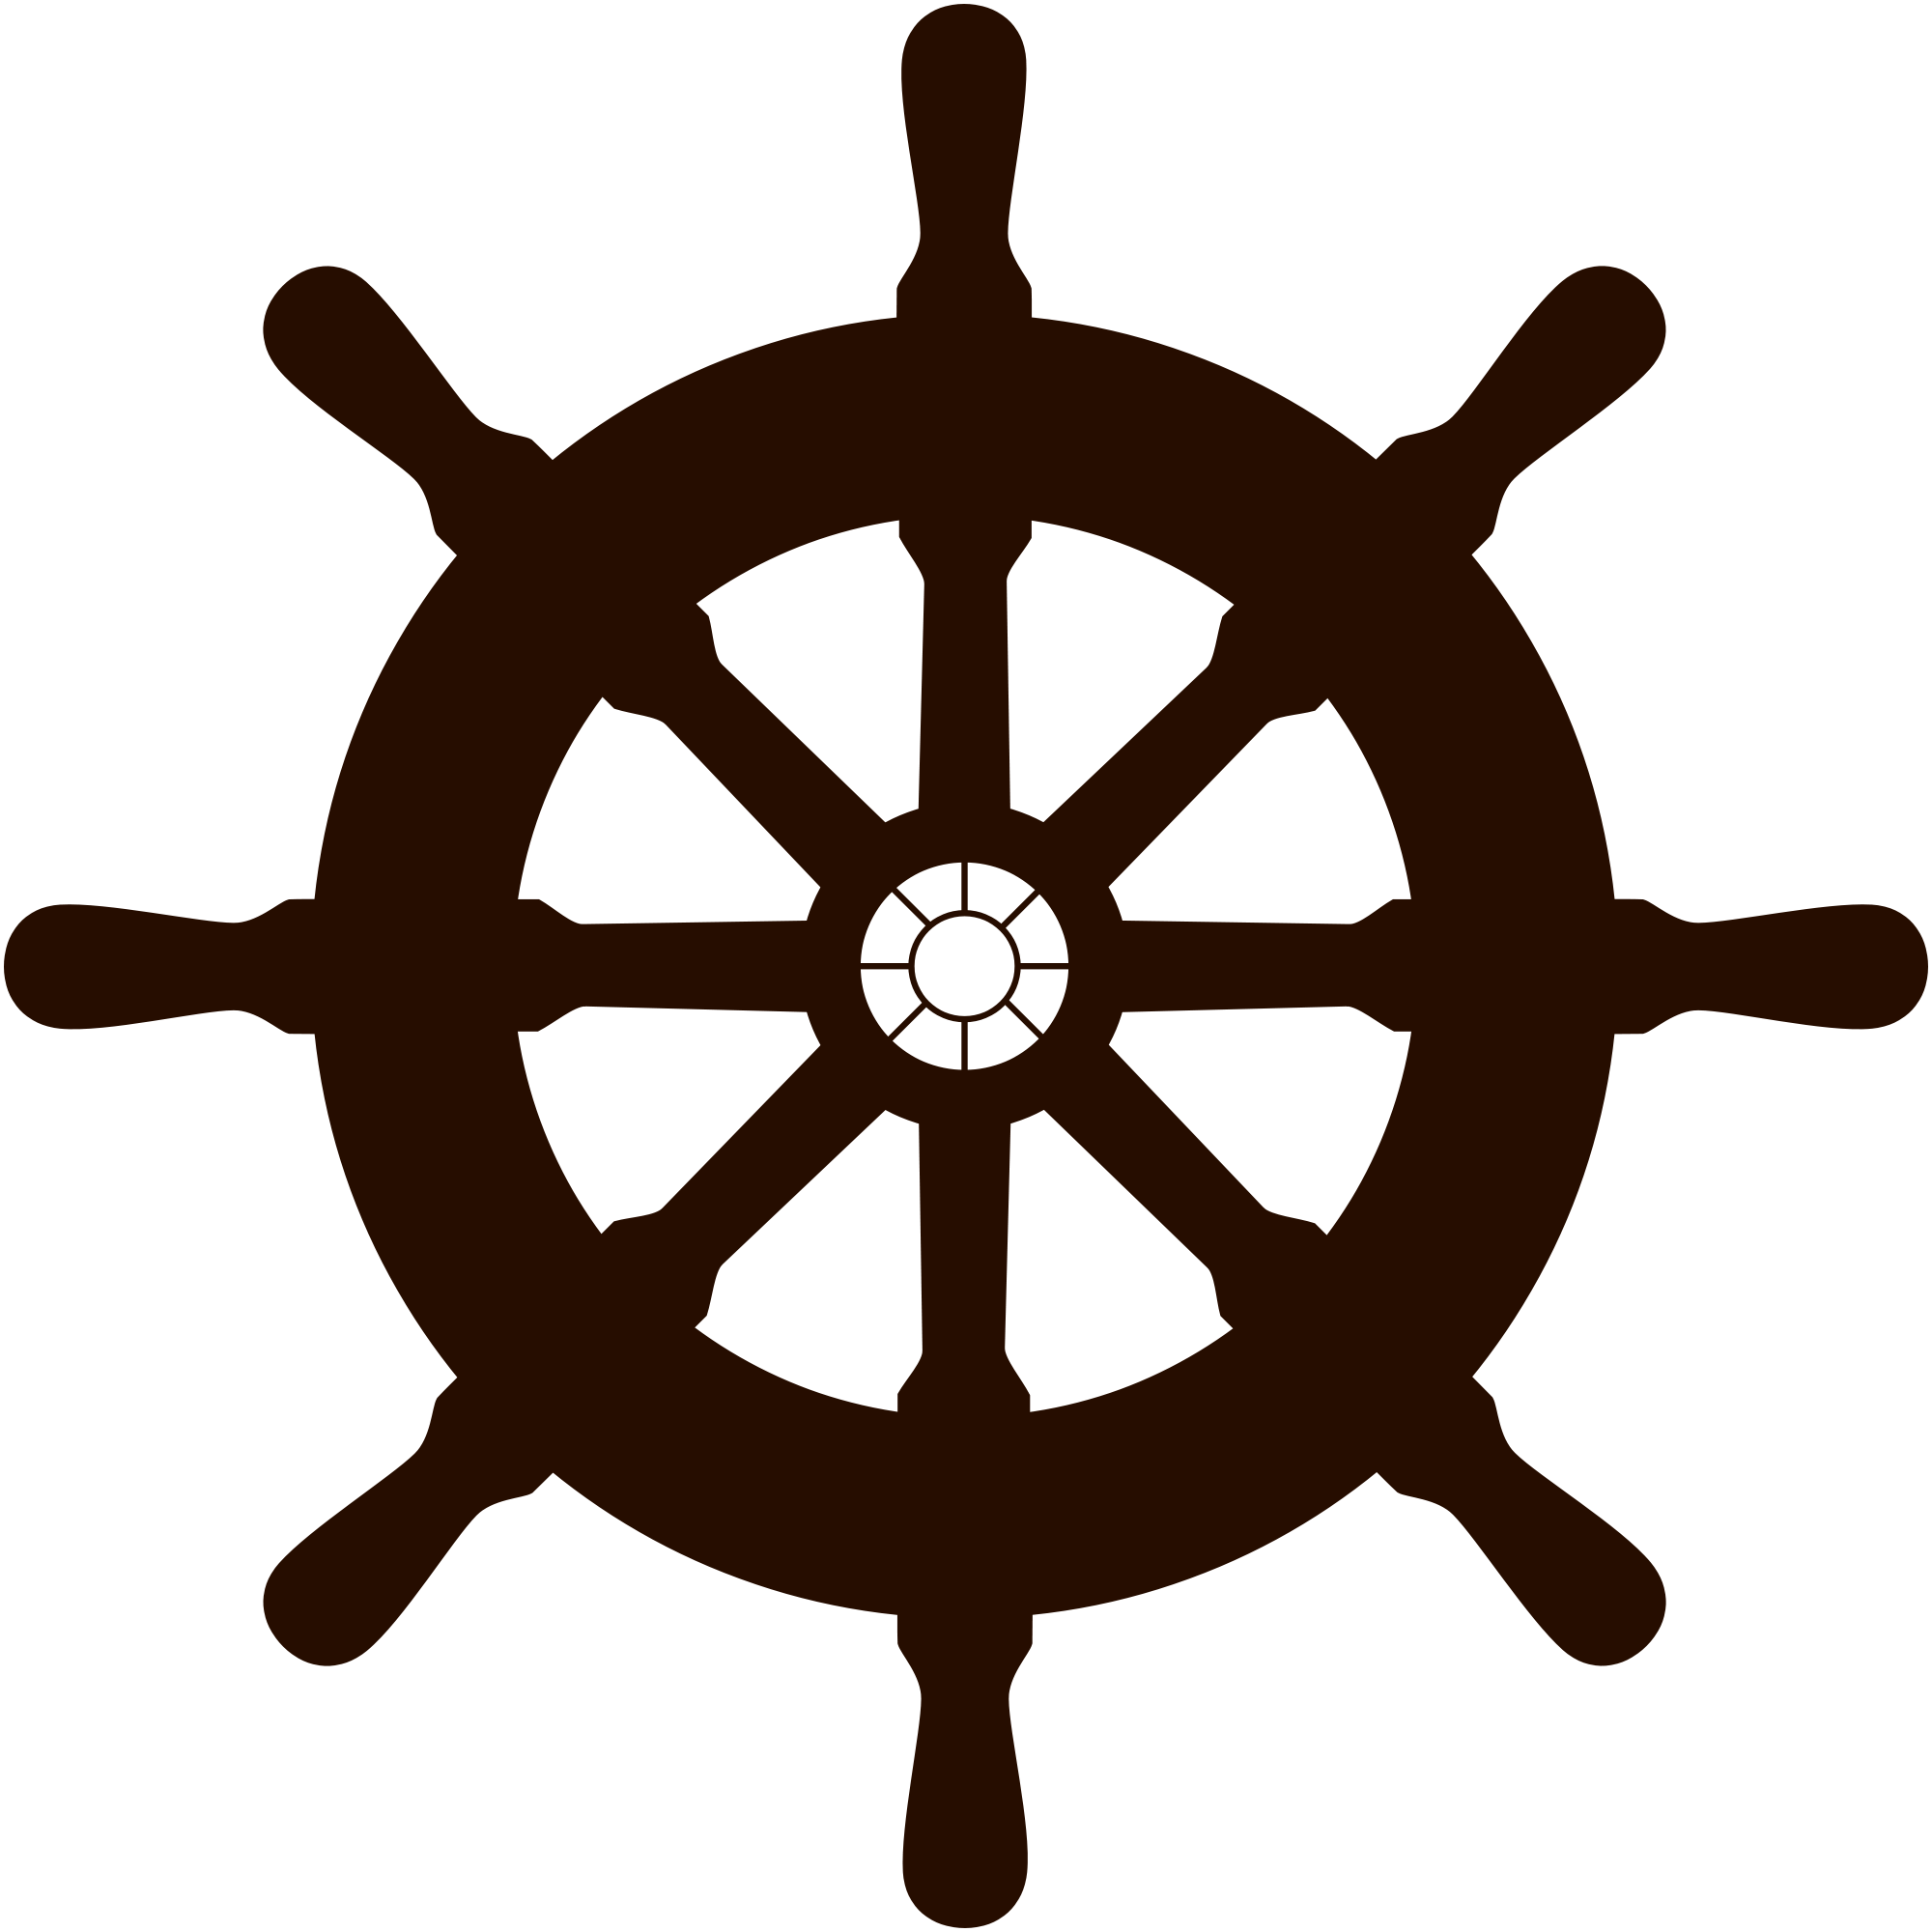 Ship wheel png transparent. Silhouette free download